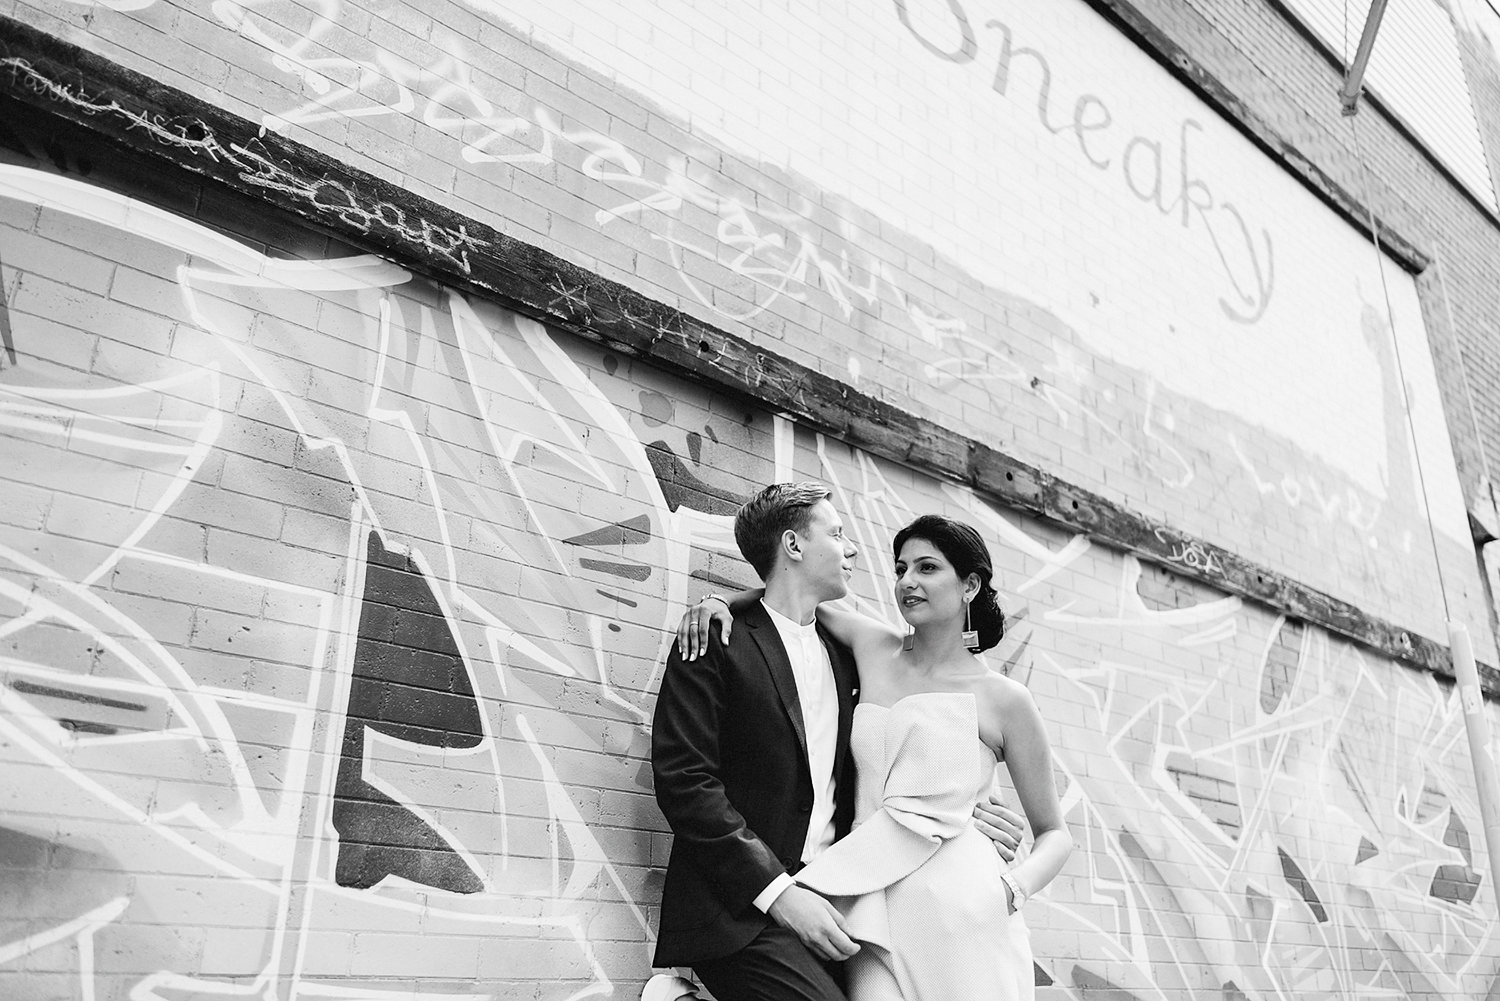 _Pop-Up-Elopement-Downtown-Urban-film-analog-photography-toronto-wedding-photographers-alternative-hipster-bride-and-groom-badass-graffiti-cool-brides-jumpsuit-loversland-sneaky-dees-bar-photojournalistic-magazine-brick-walls-bw.jpg